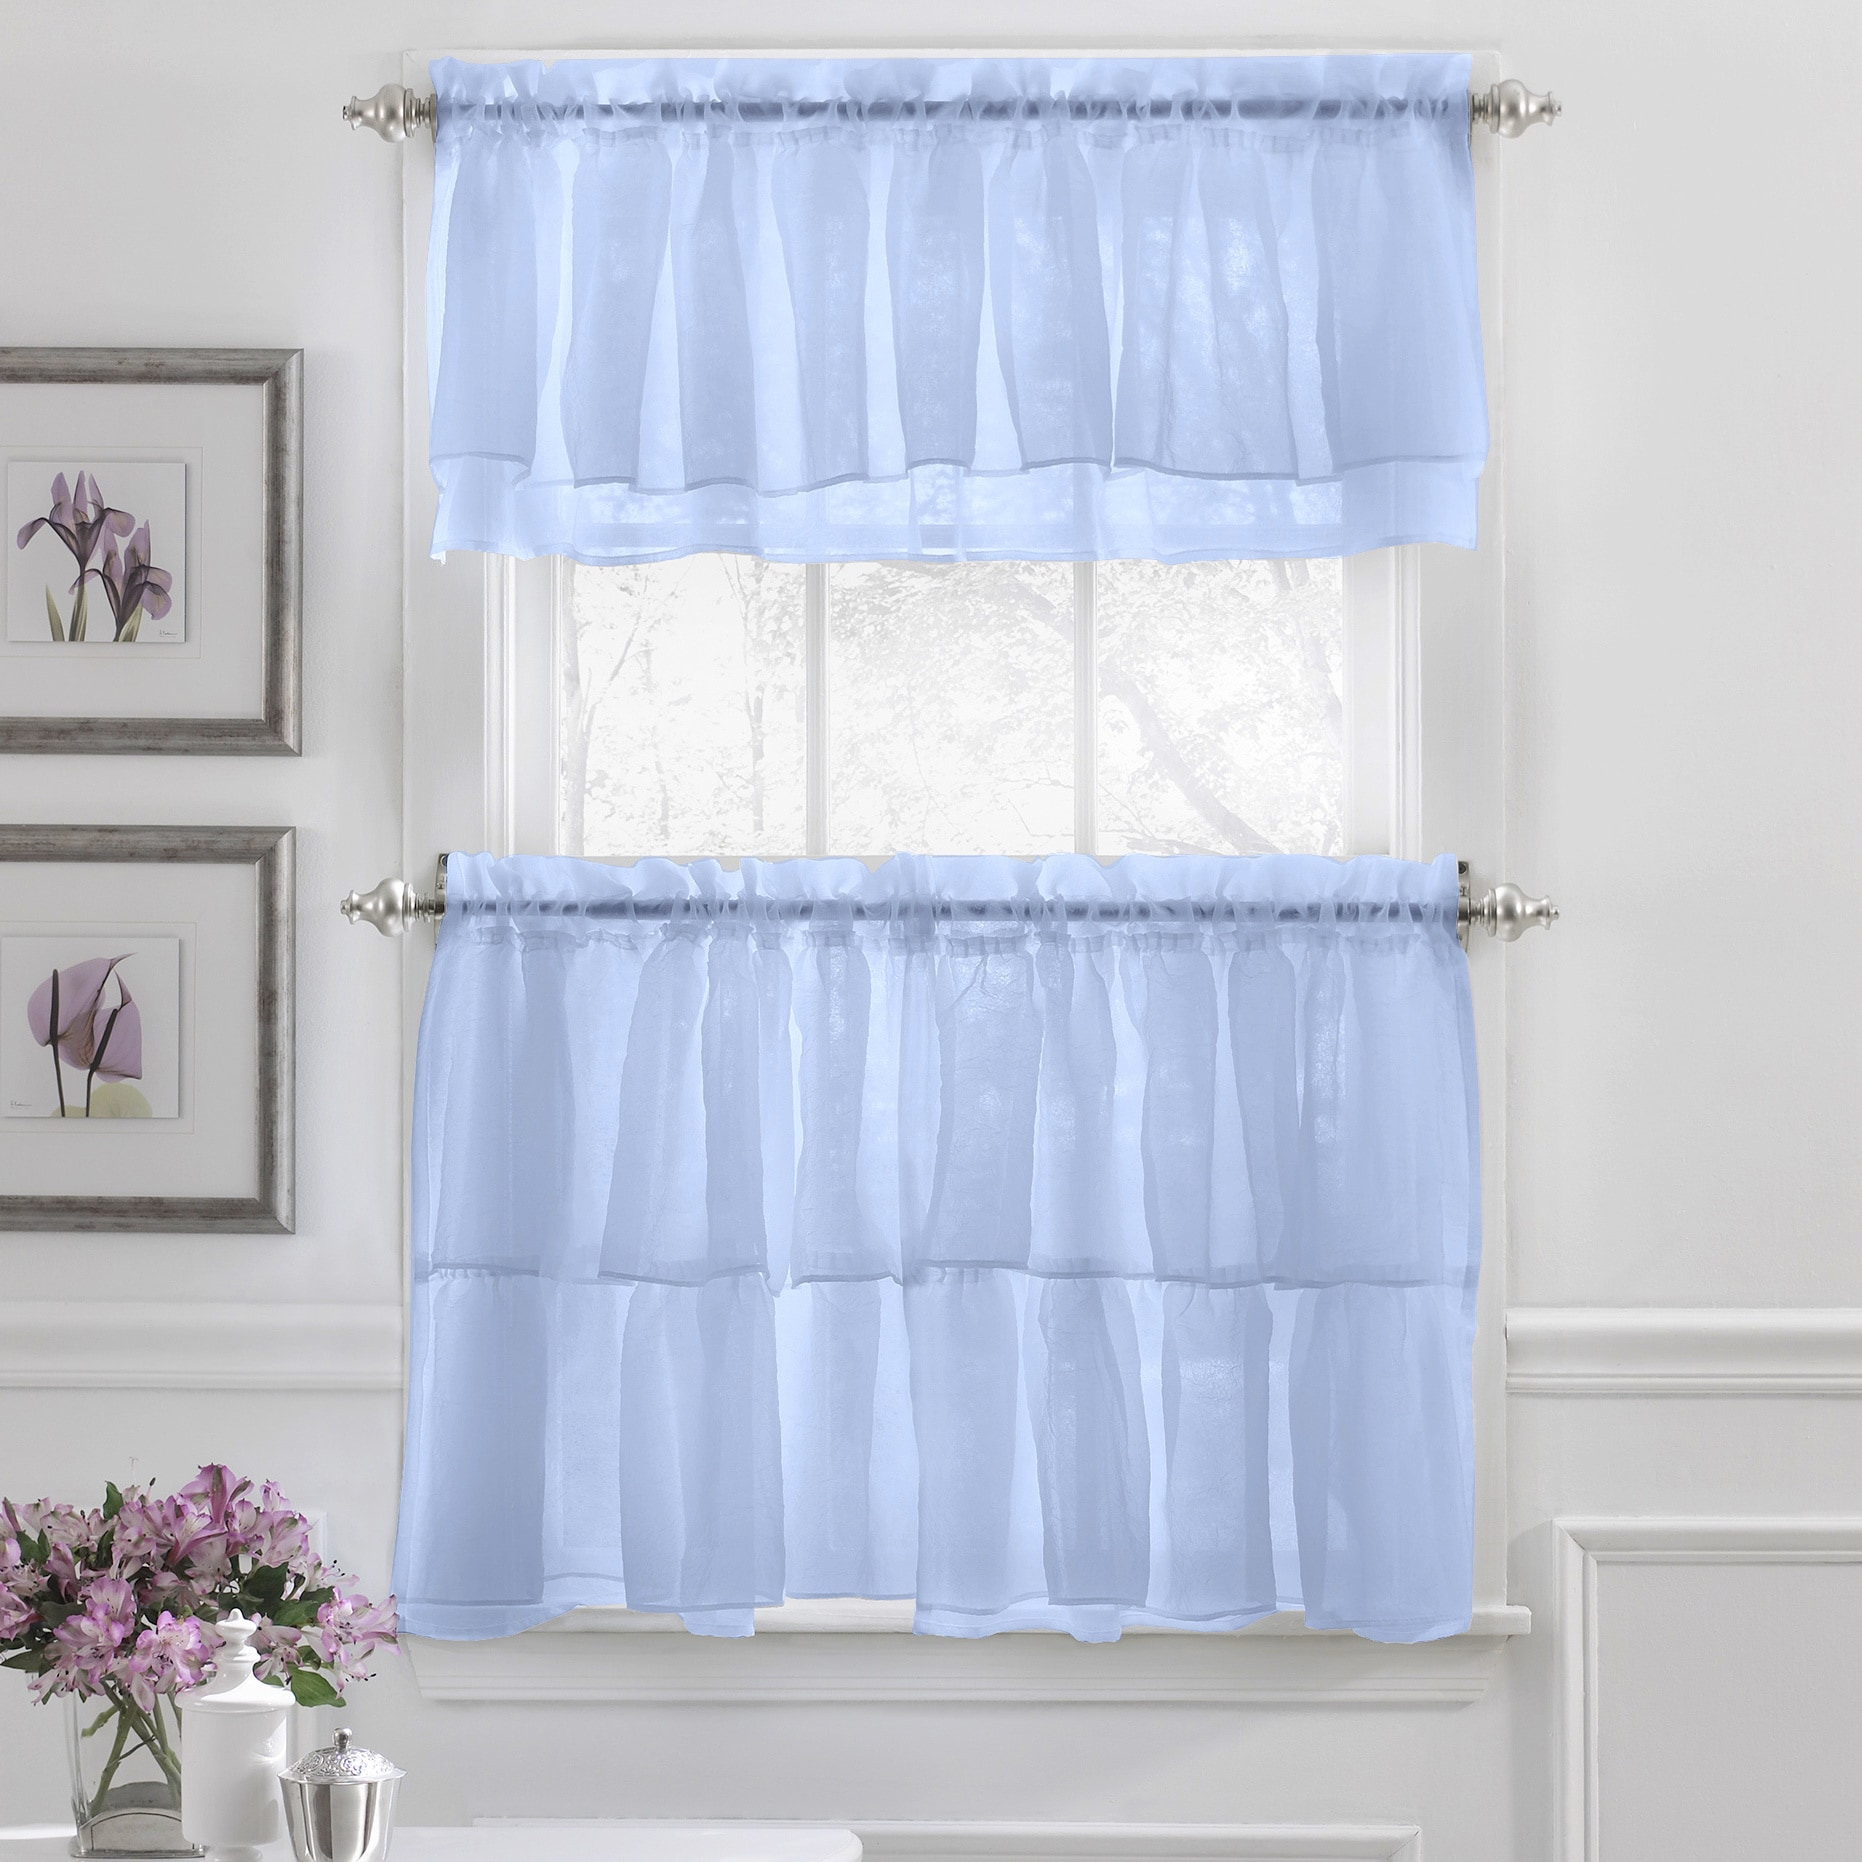 Crushed Voile Ruffle Window Curtain Separates - Free Shipping On ...